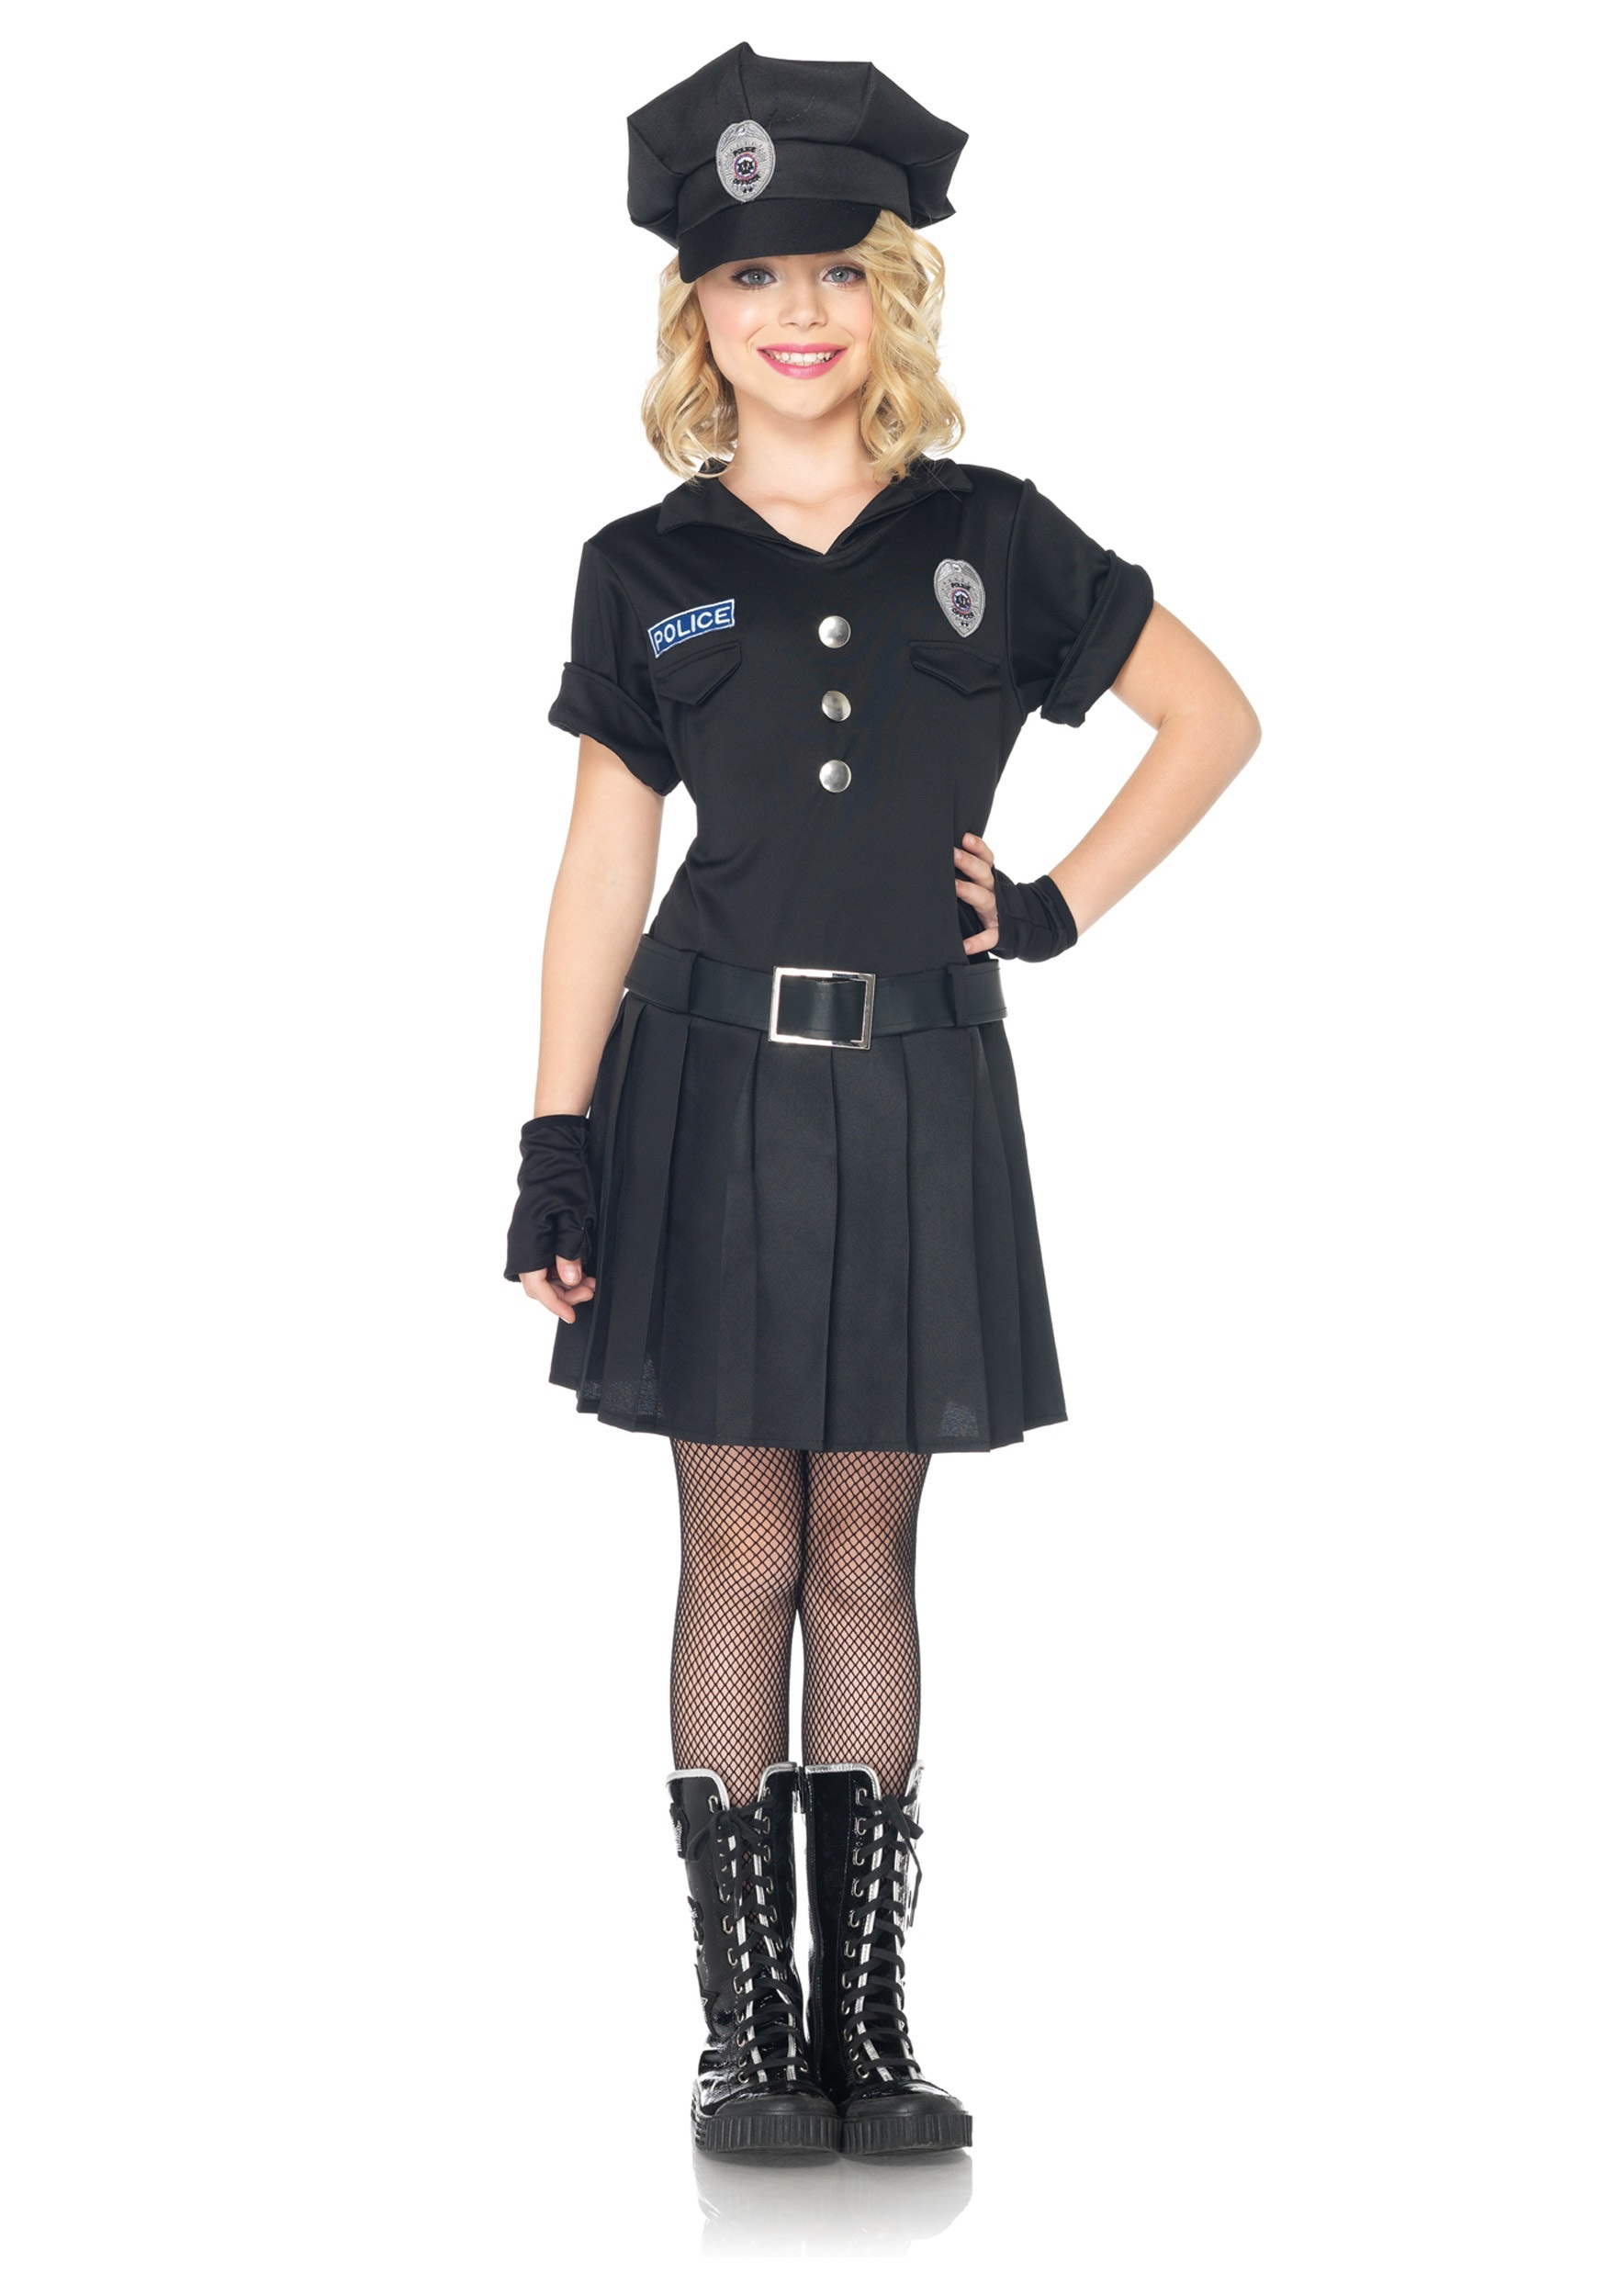 Girls Playtime Police Costume  sc 1 st  Halloween Costumes & Girls Playtime Police Costume - Halloween Costumes